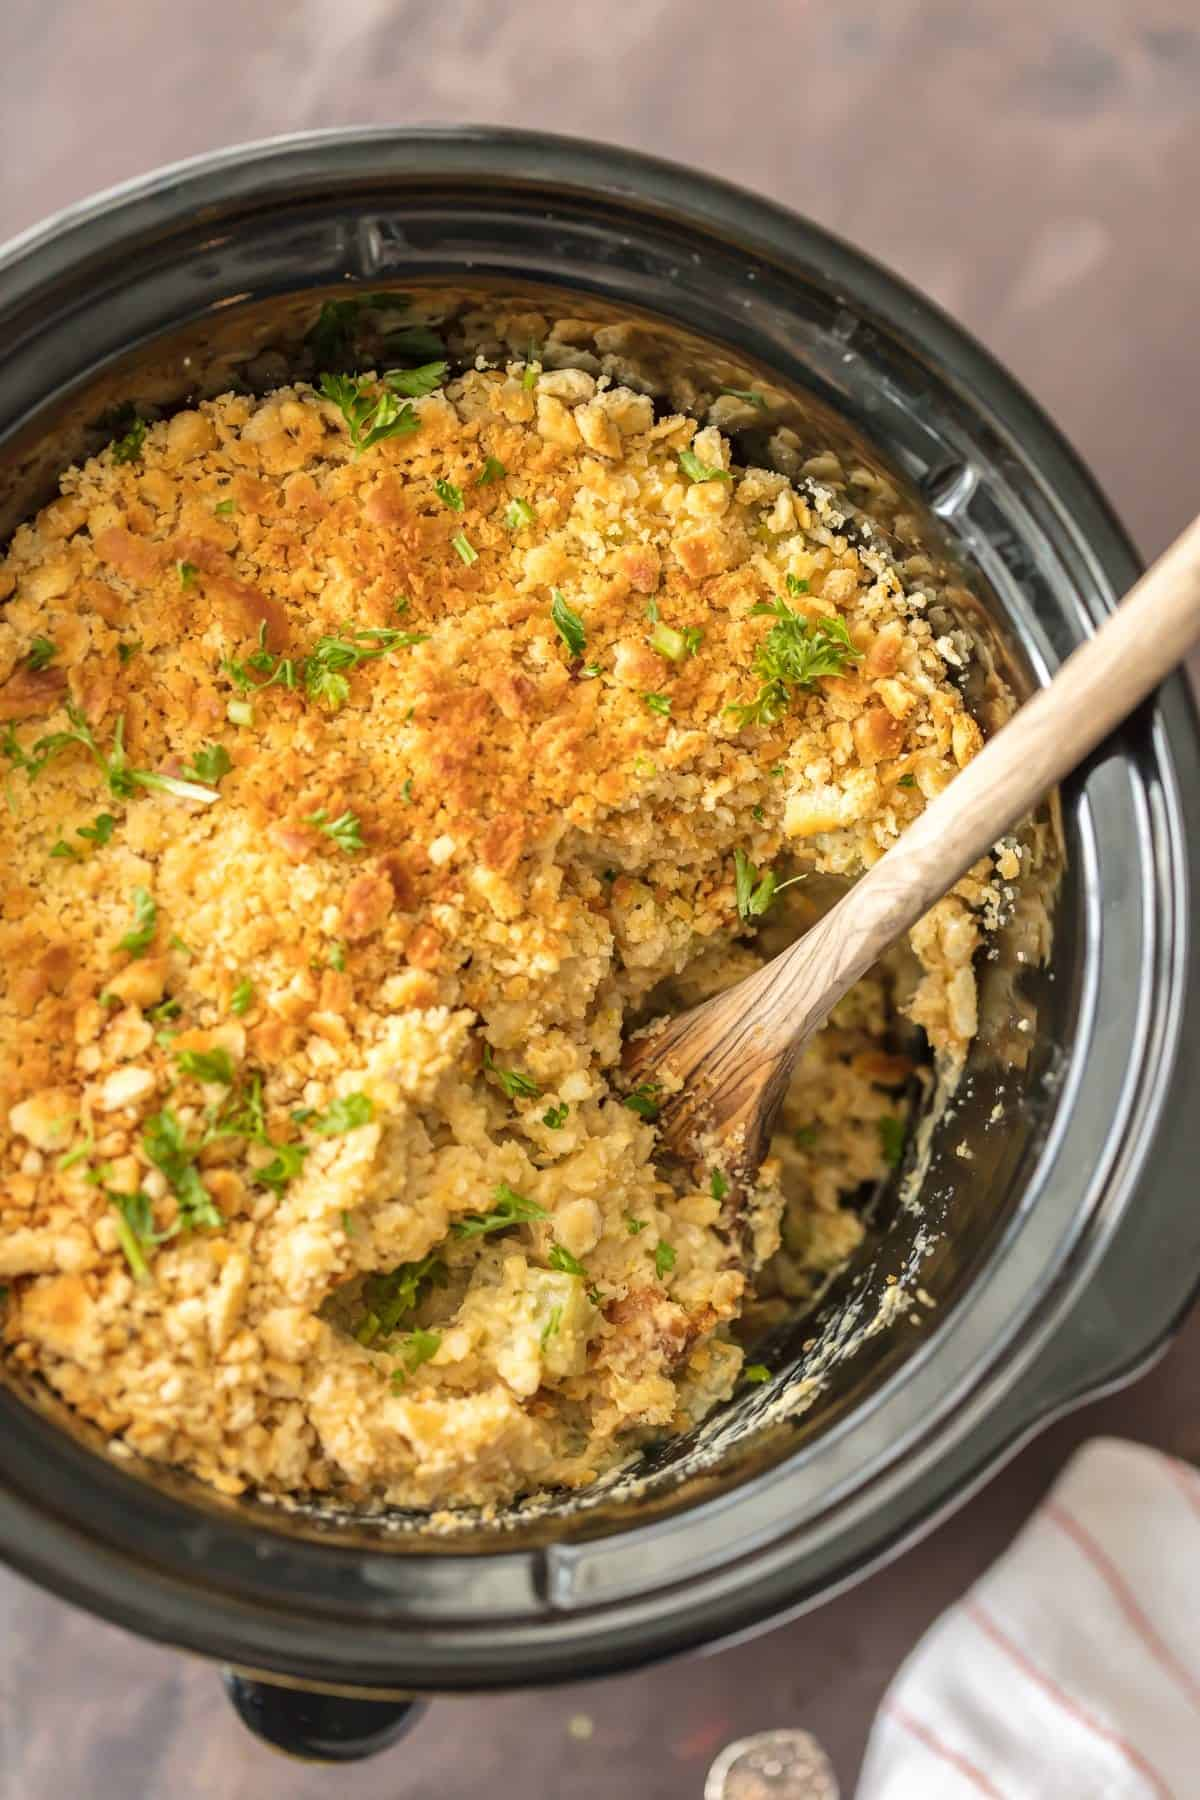 slow-cooker-broccoli-rice-casserole-6-of-8